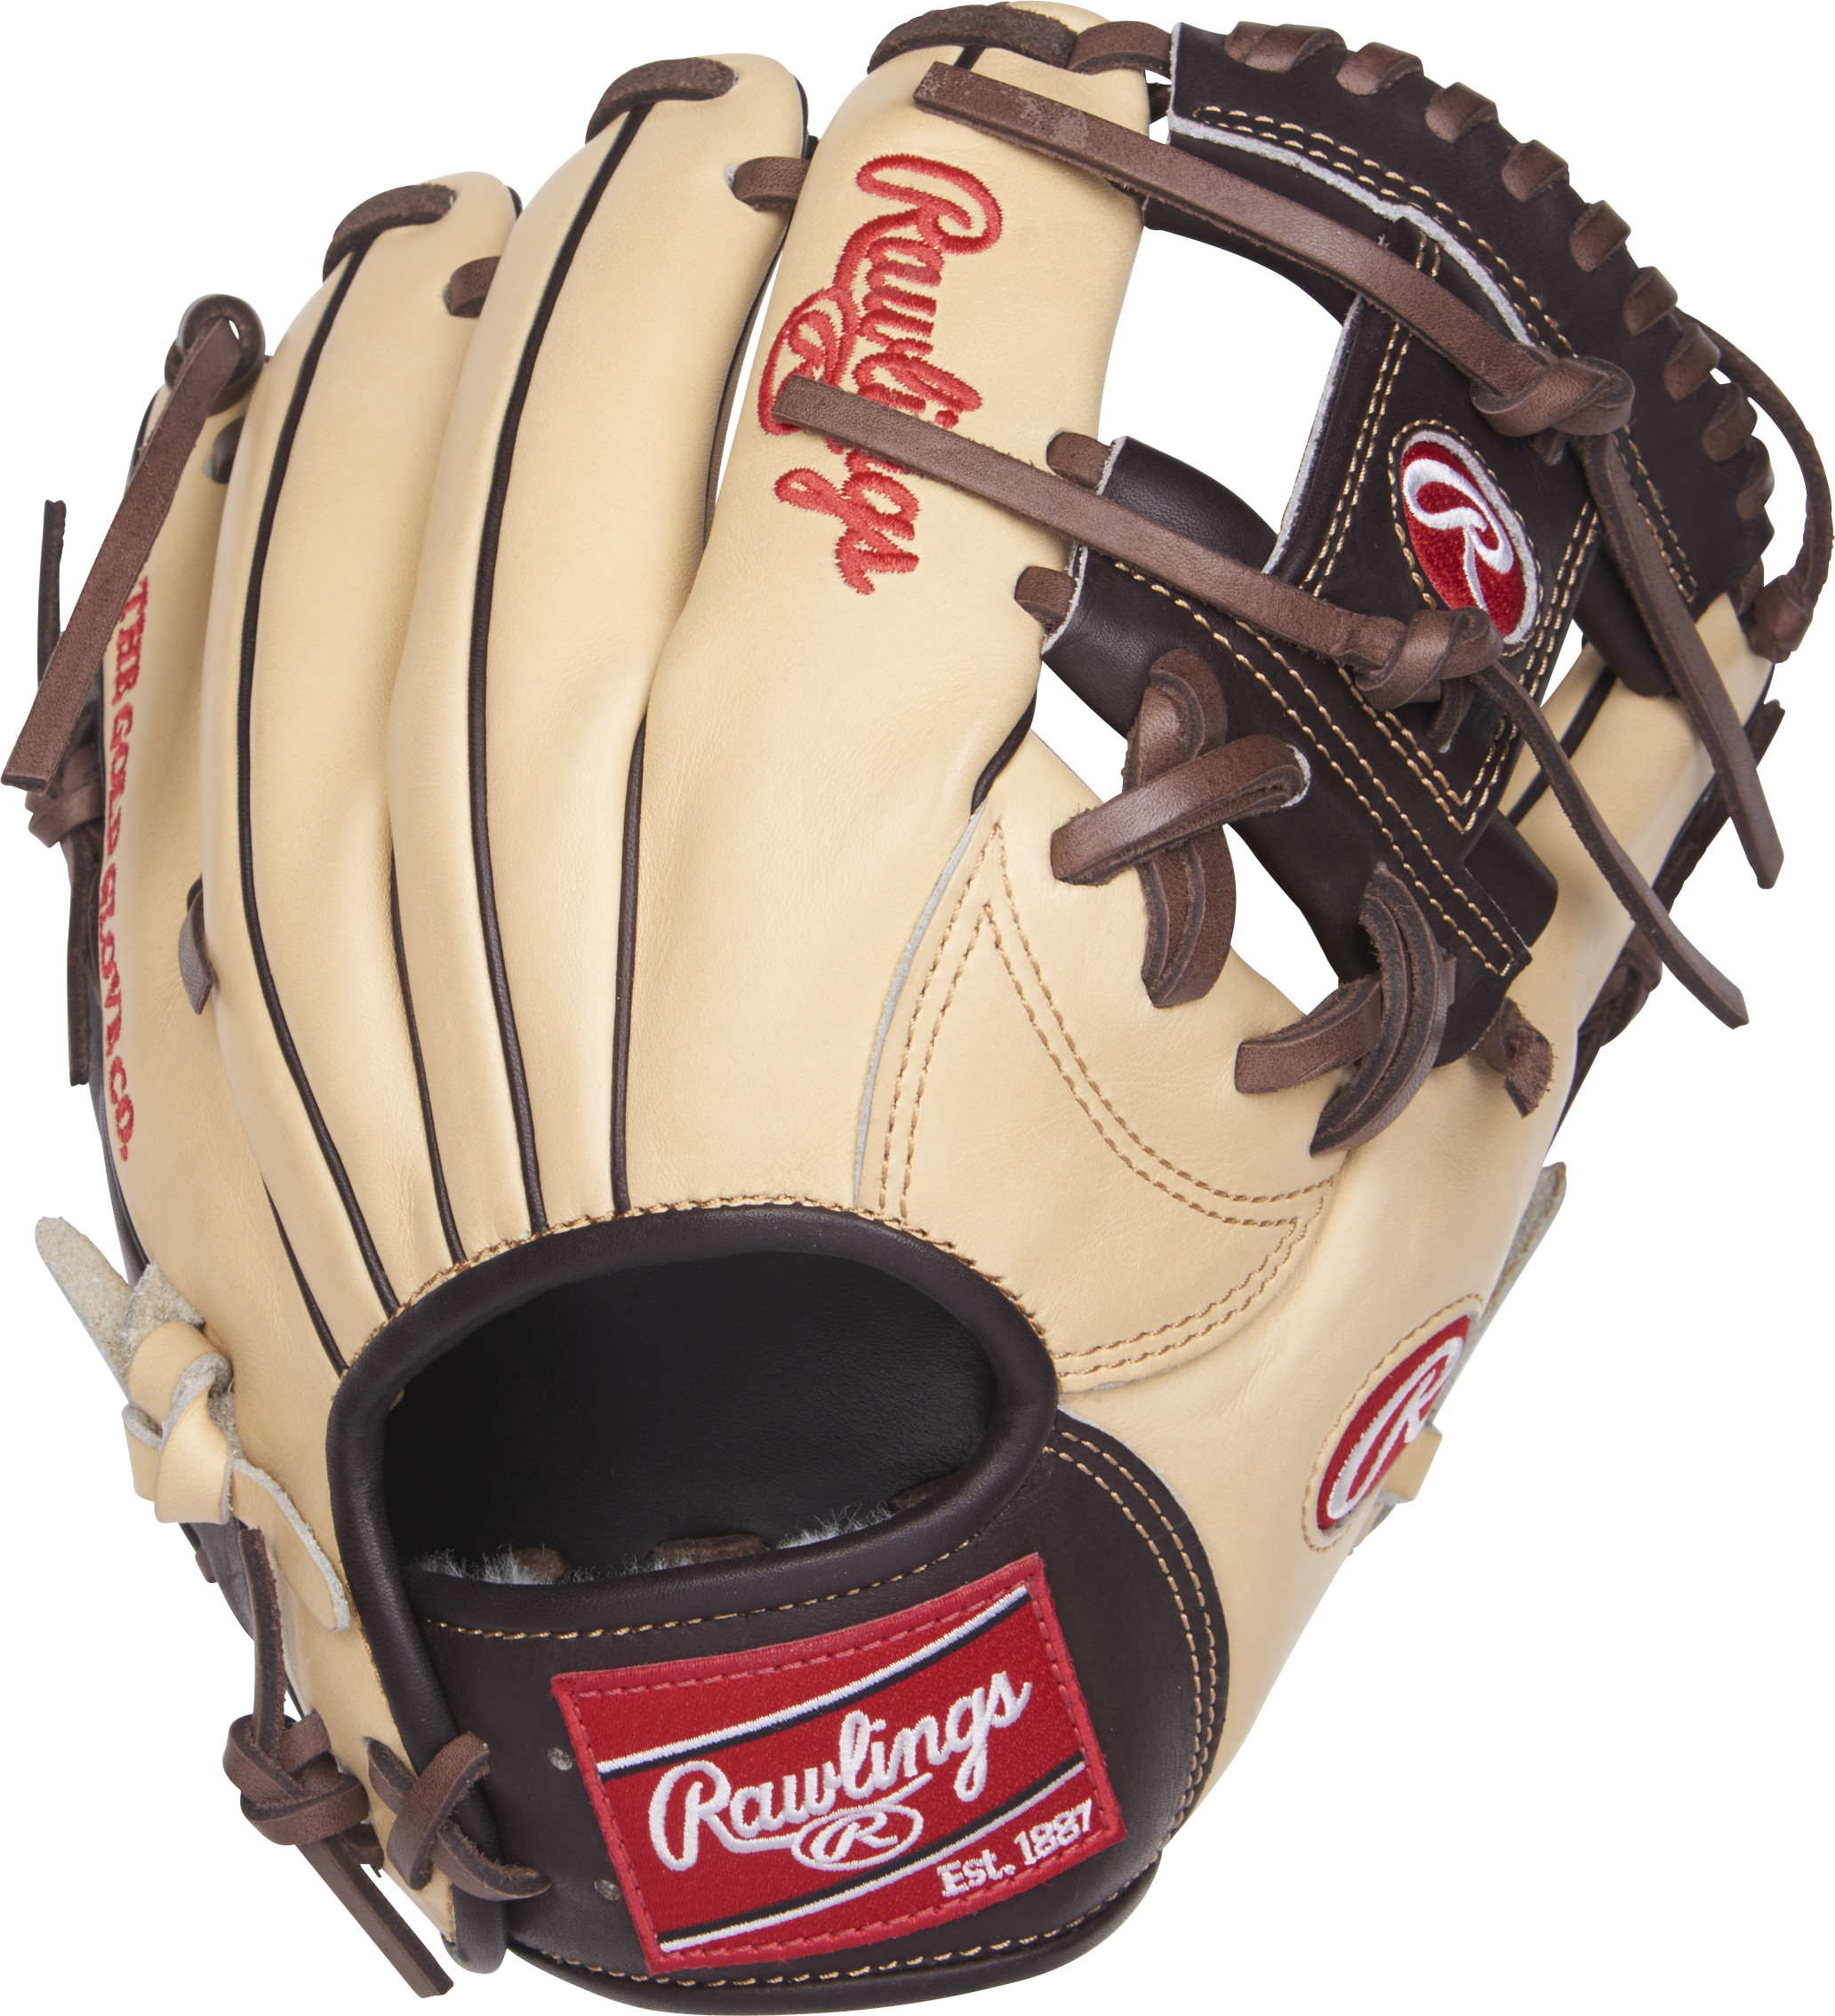 http://www.bestbatdeals.com/images/gloves/rawlings/PROSNP4-2CMO-2.jpg